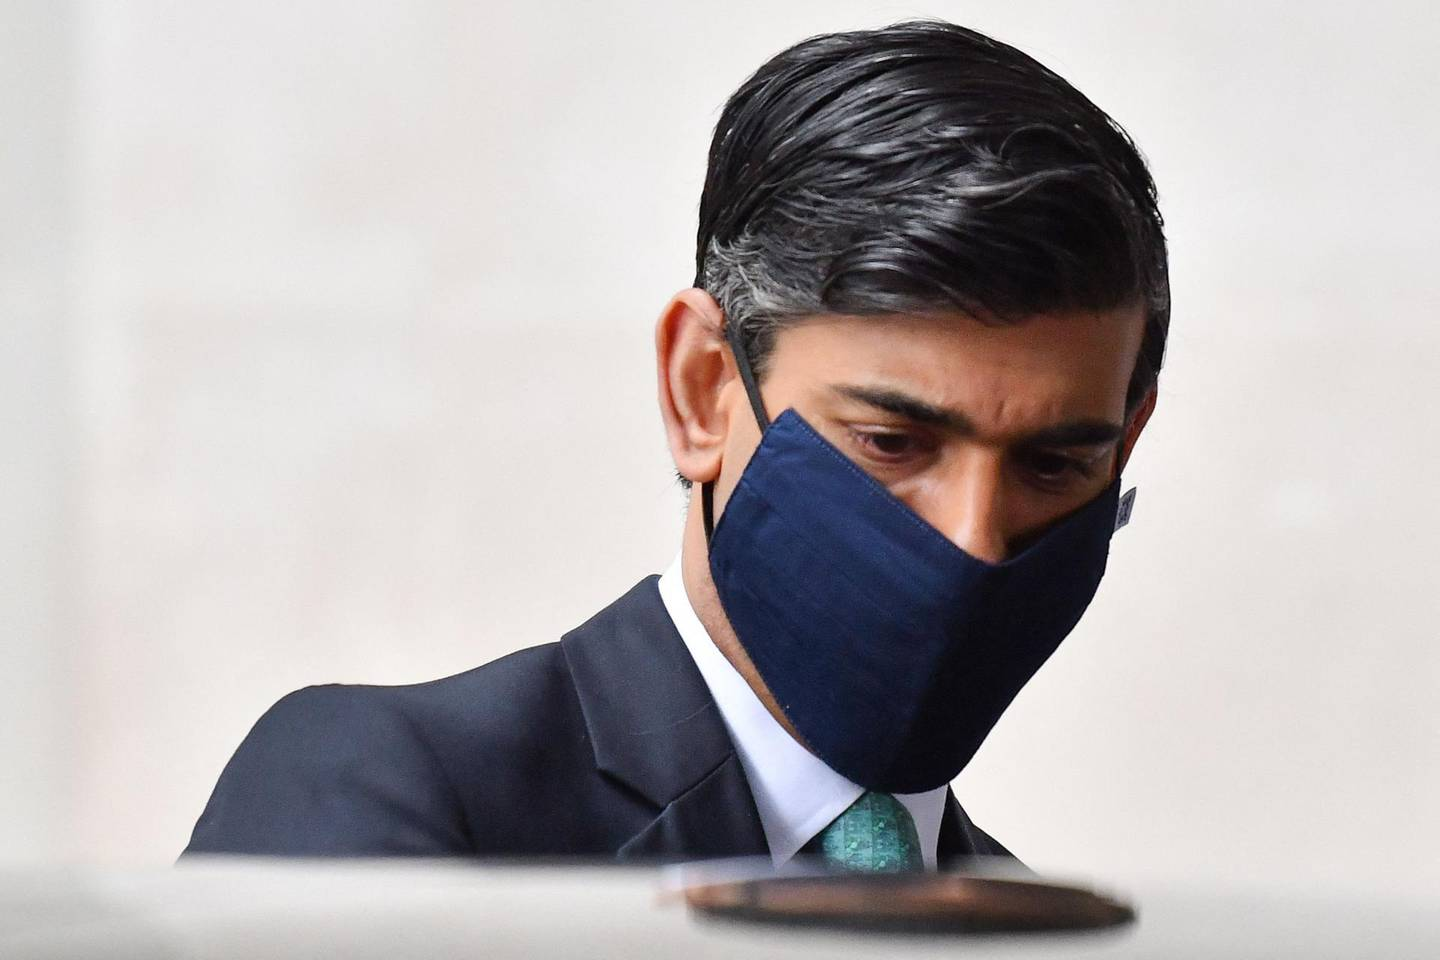 Britain's Chancellor of the Exchequer Rishi Sunak, wearing a protective face covering to combat the spread of the coronavirus, leaves the BBC in central London on February 28, 2021, after appearing on the BBC political programme The Andrew Marr Show.  Britain is to launch a new Infrastructure Bank with £12 billion ($17 bn, 14 bn euros) in capital and £10 billion in government guarantees, the Treasury said Saturday, aimed at kickstarting the economy. Rishi Sunak is expected to announce the initial funding at Wednesday's Budget and the bank will launch in spring, the Treasury said.  / AFP / Justin TALLIS